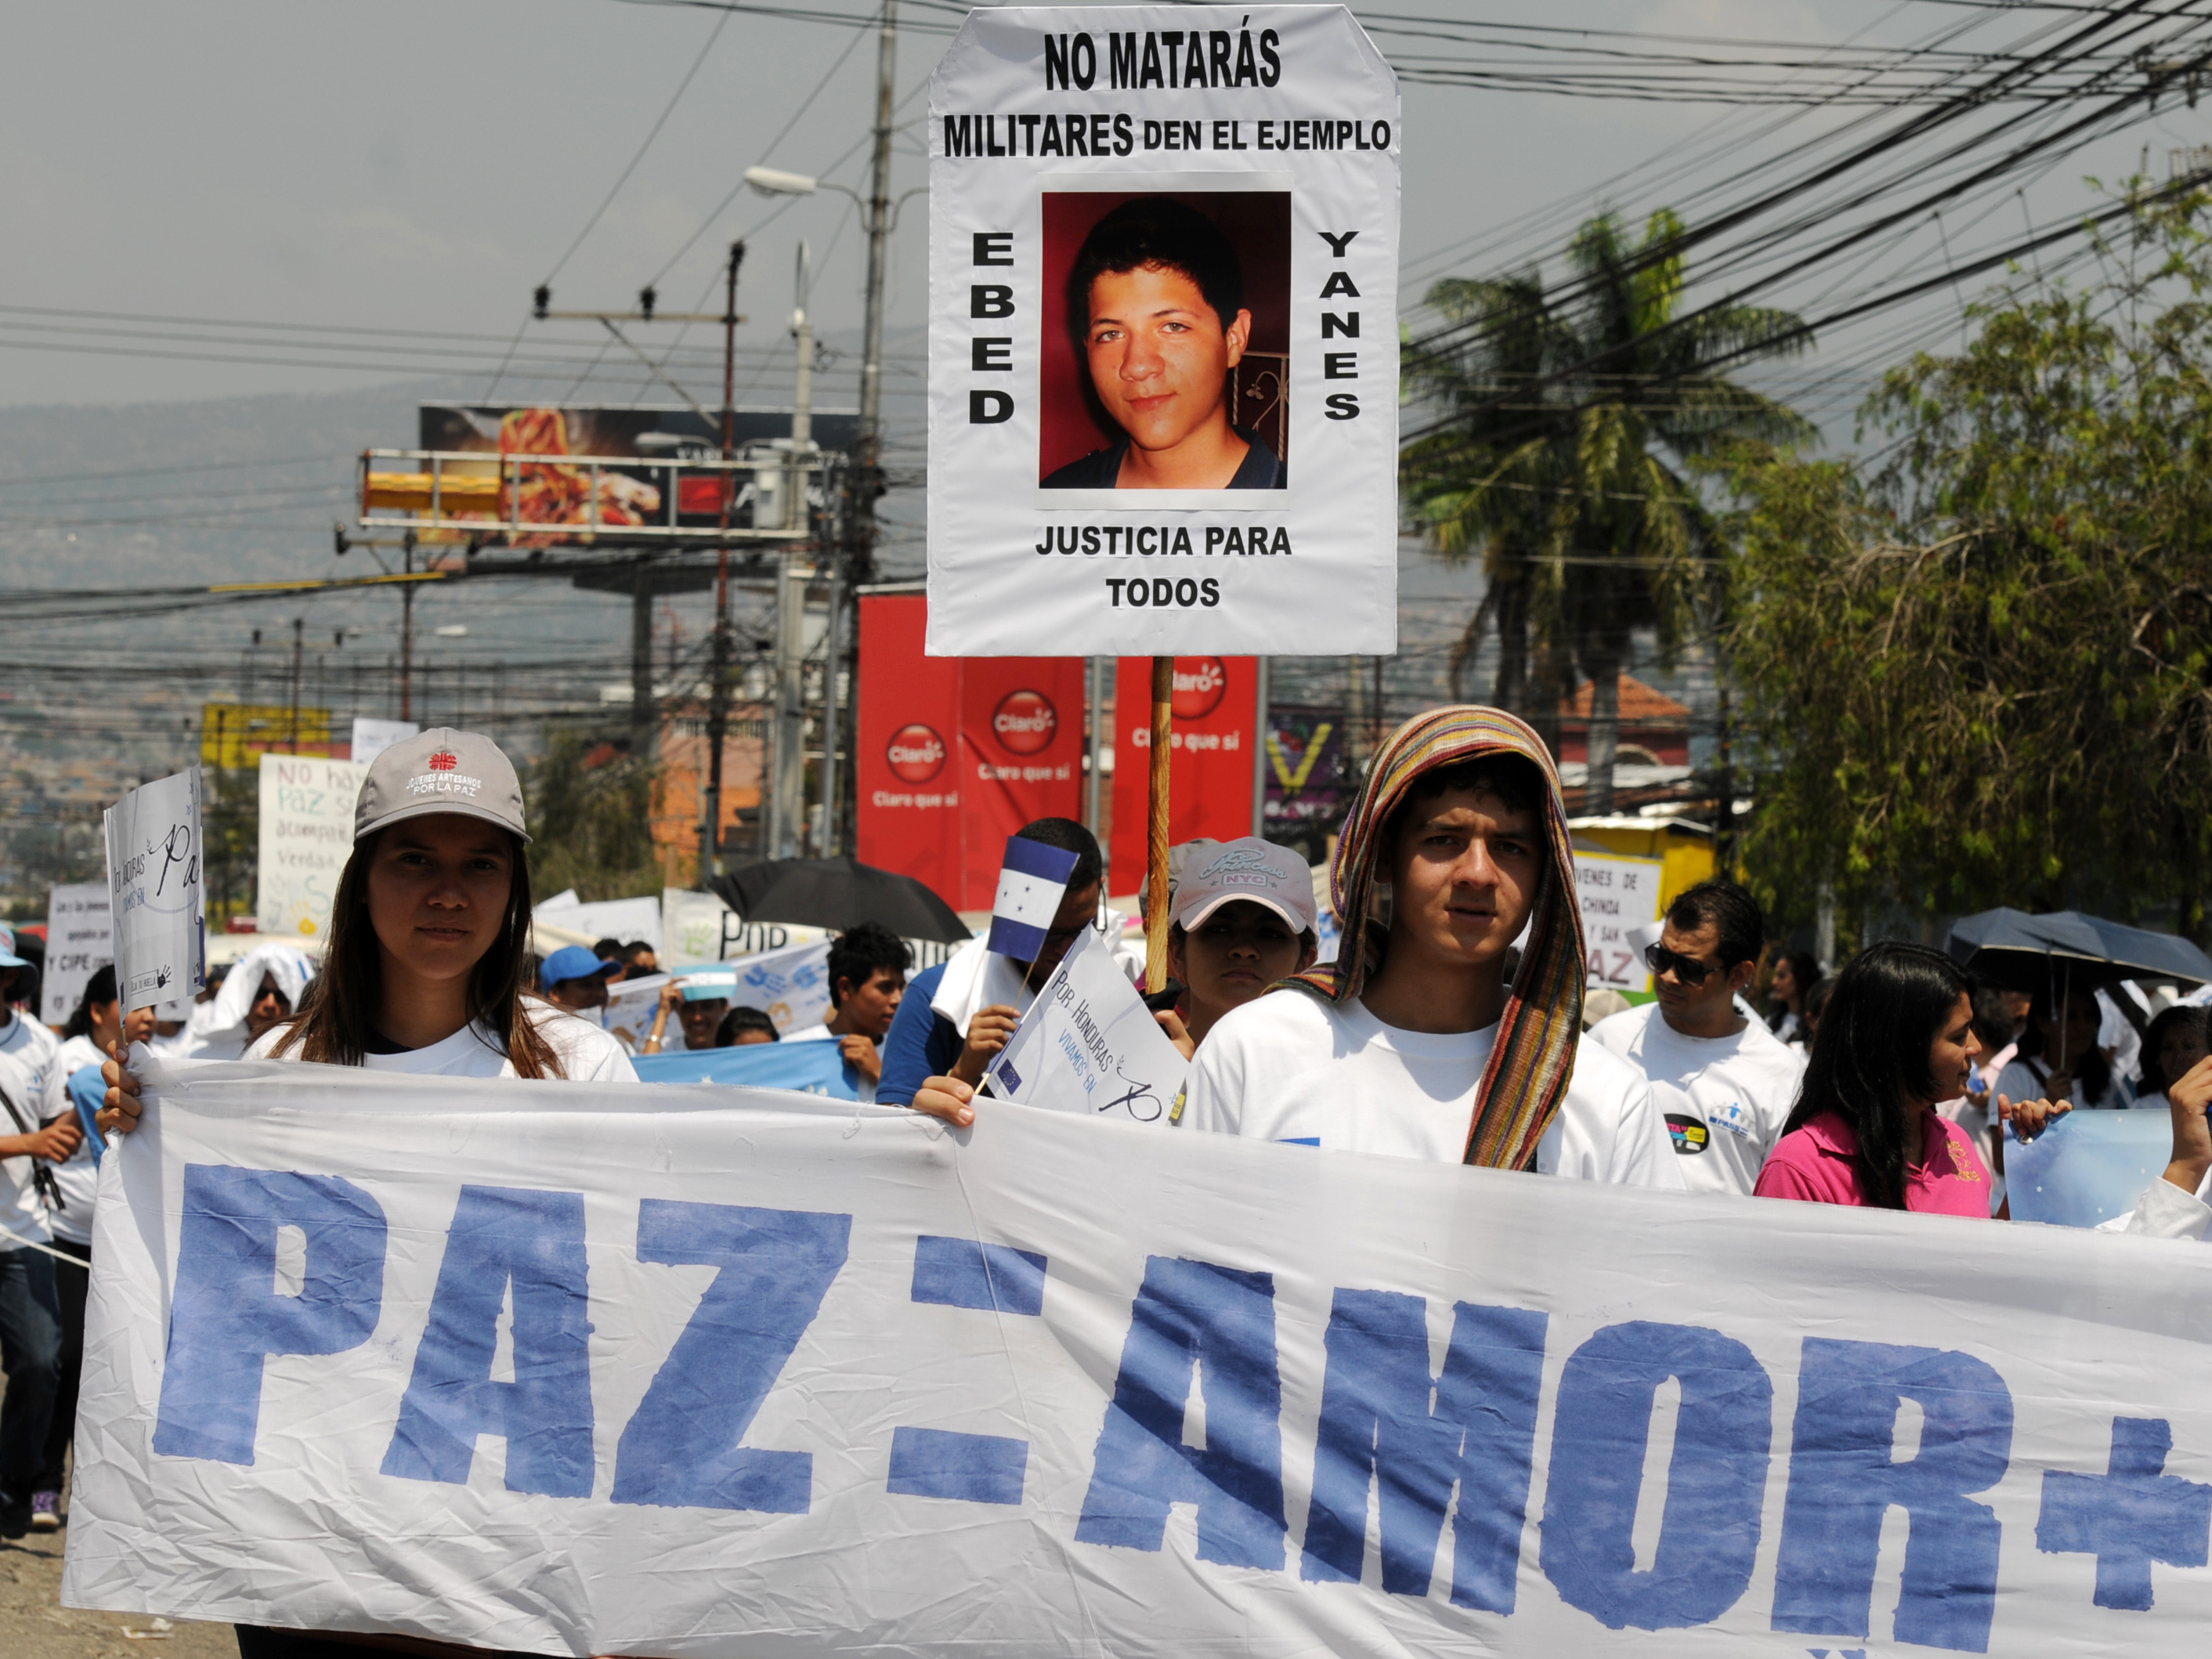 Thousands of Hondurans, joined by delegates of the European Union based in the country, take part in the March for Peace in Tegucigalpa, on May 5. Honduras has the world's highest murder rate, at 92 deaths per 100,000 people, according to a recent statement by a UNESCO authority.